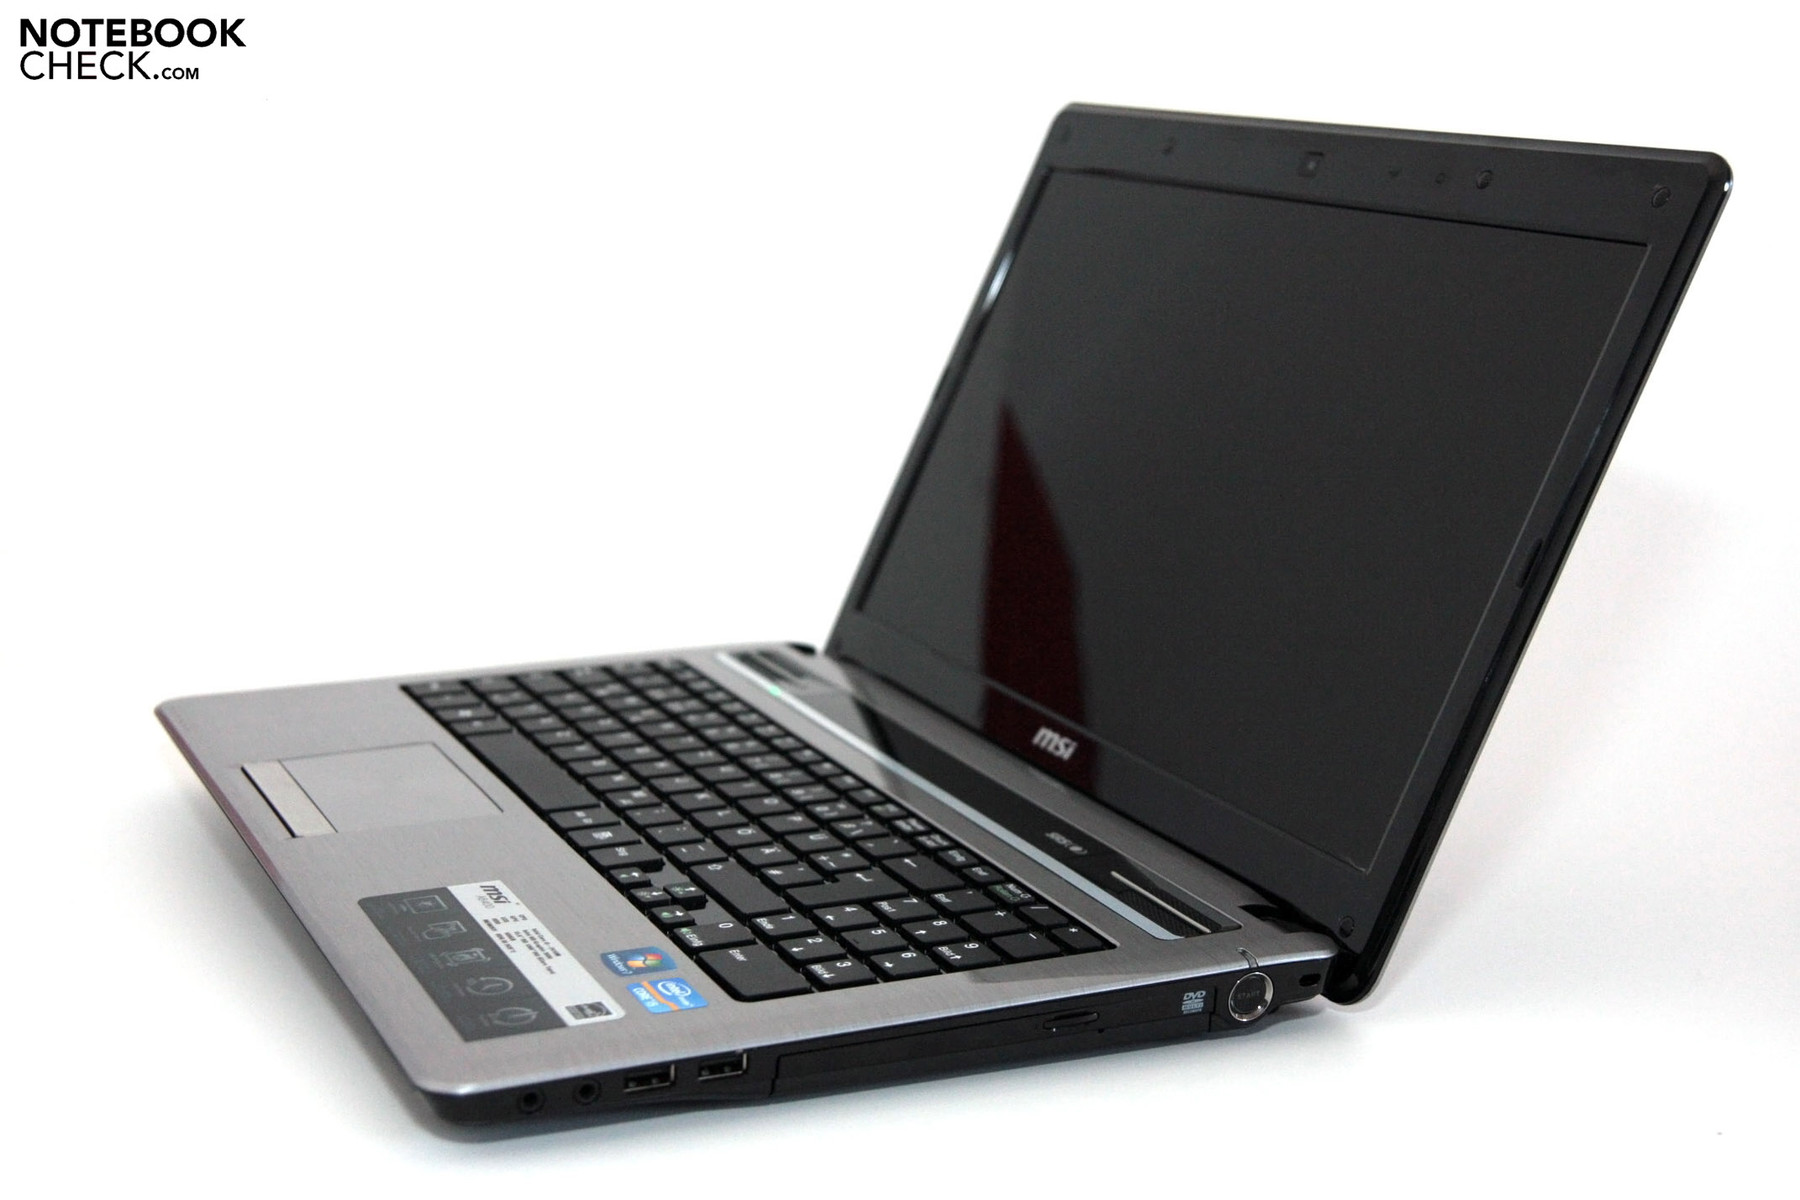 MSI X360 NOTEBOOK SENTELIC MULTI TOUCHPAD DRIVERS FOR WINDOWS 8